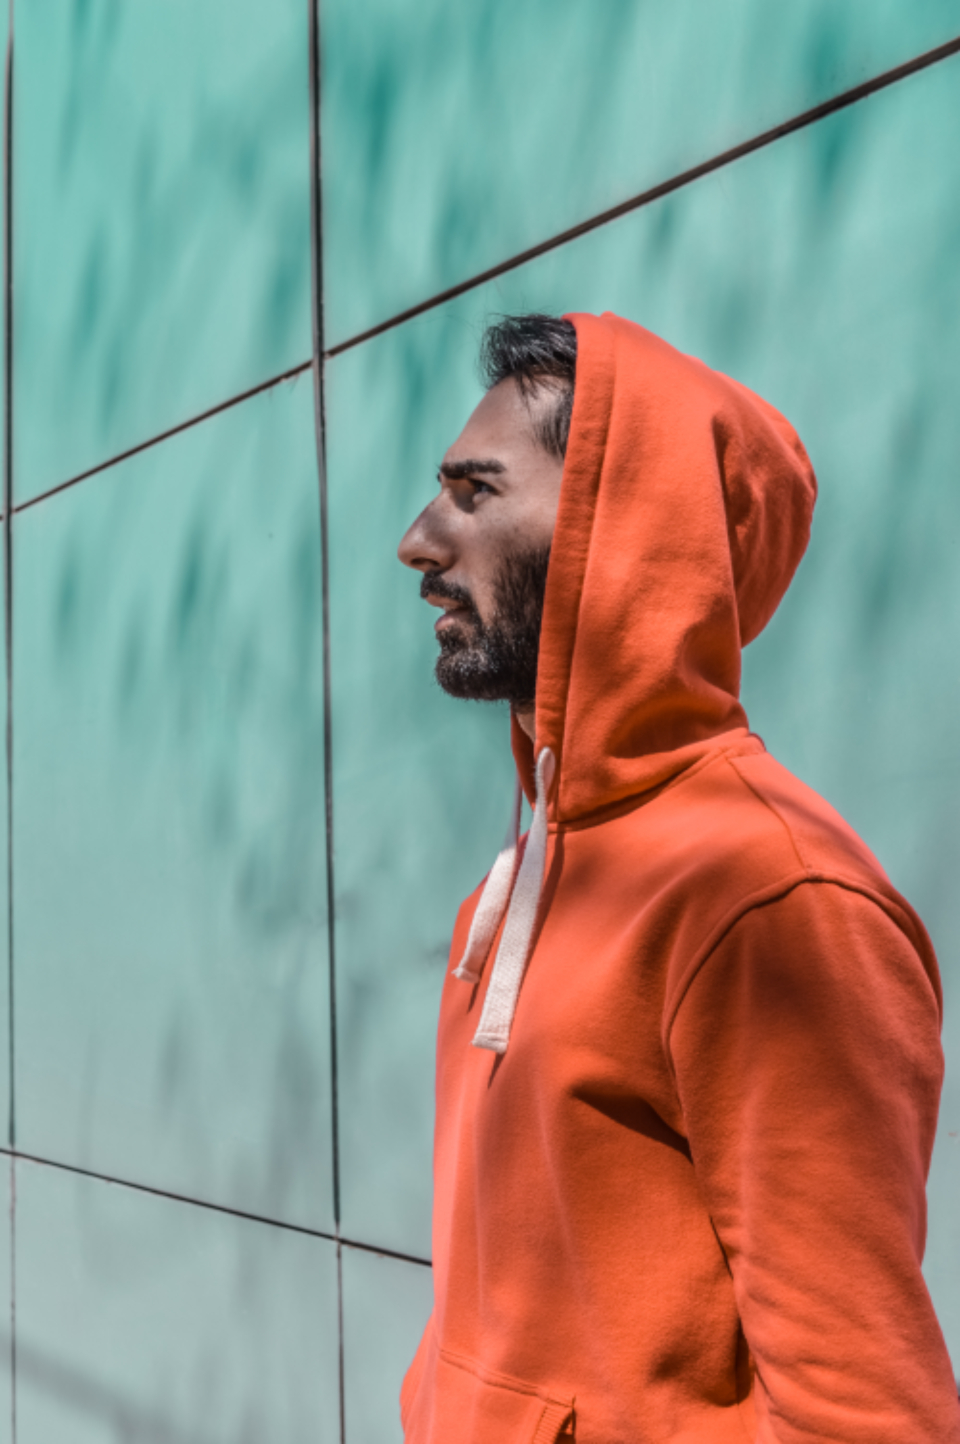 man casual portrait hoodie sweatshirt beard person alone building exterior outdoors staring red sunlight